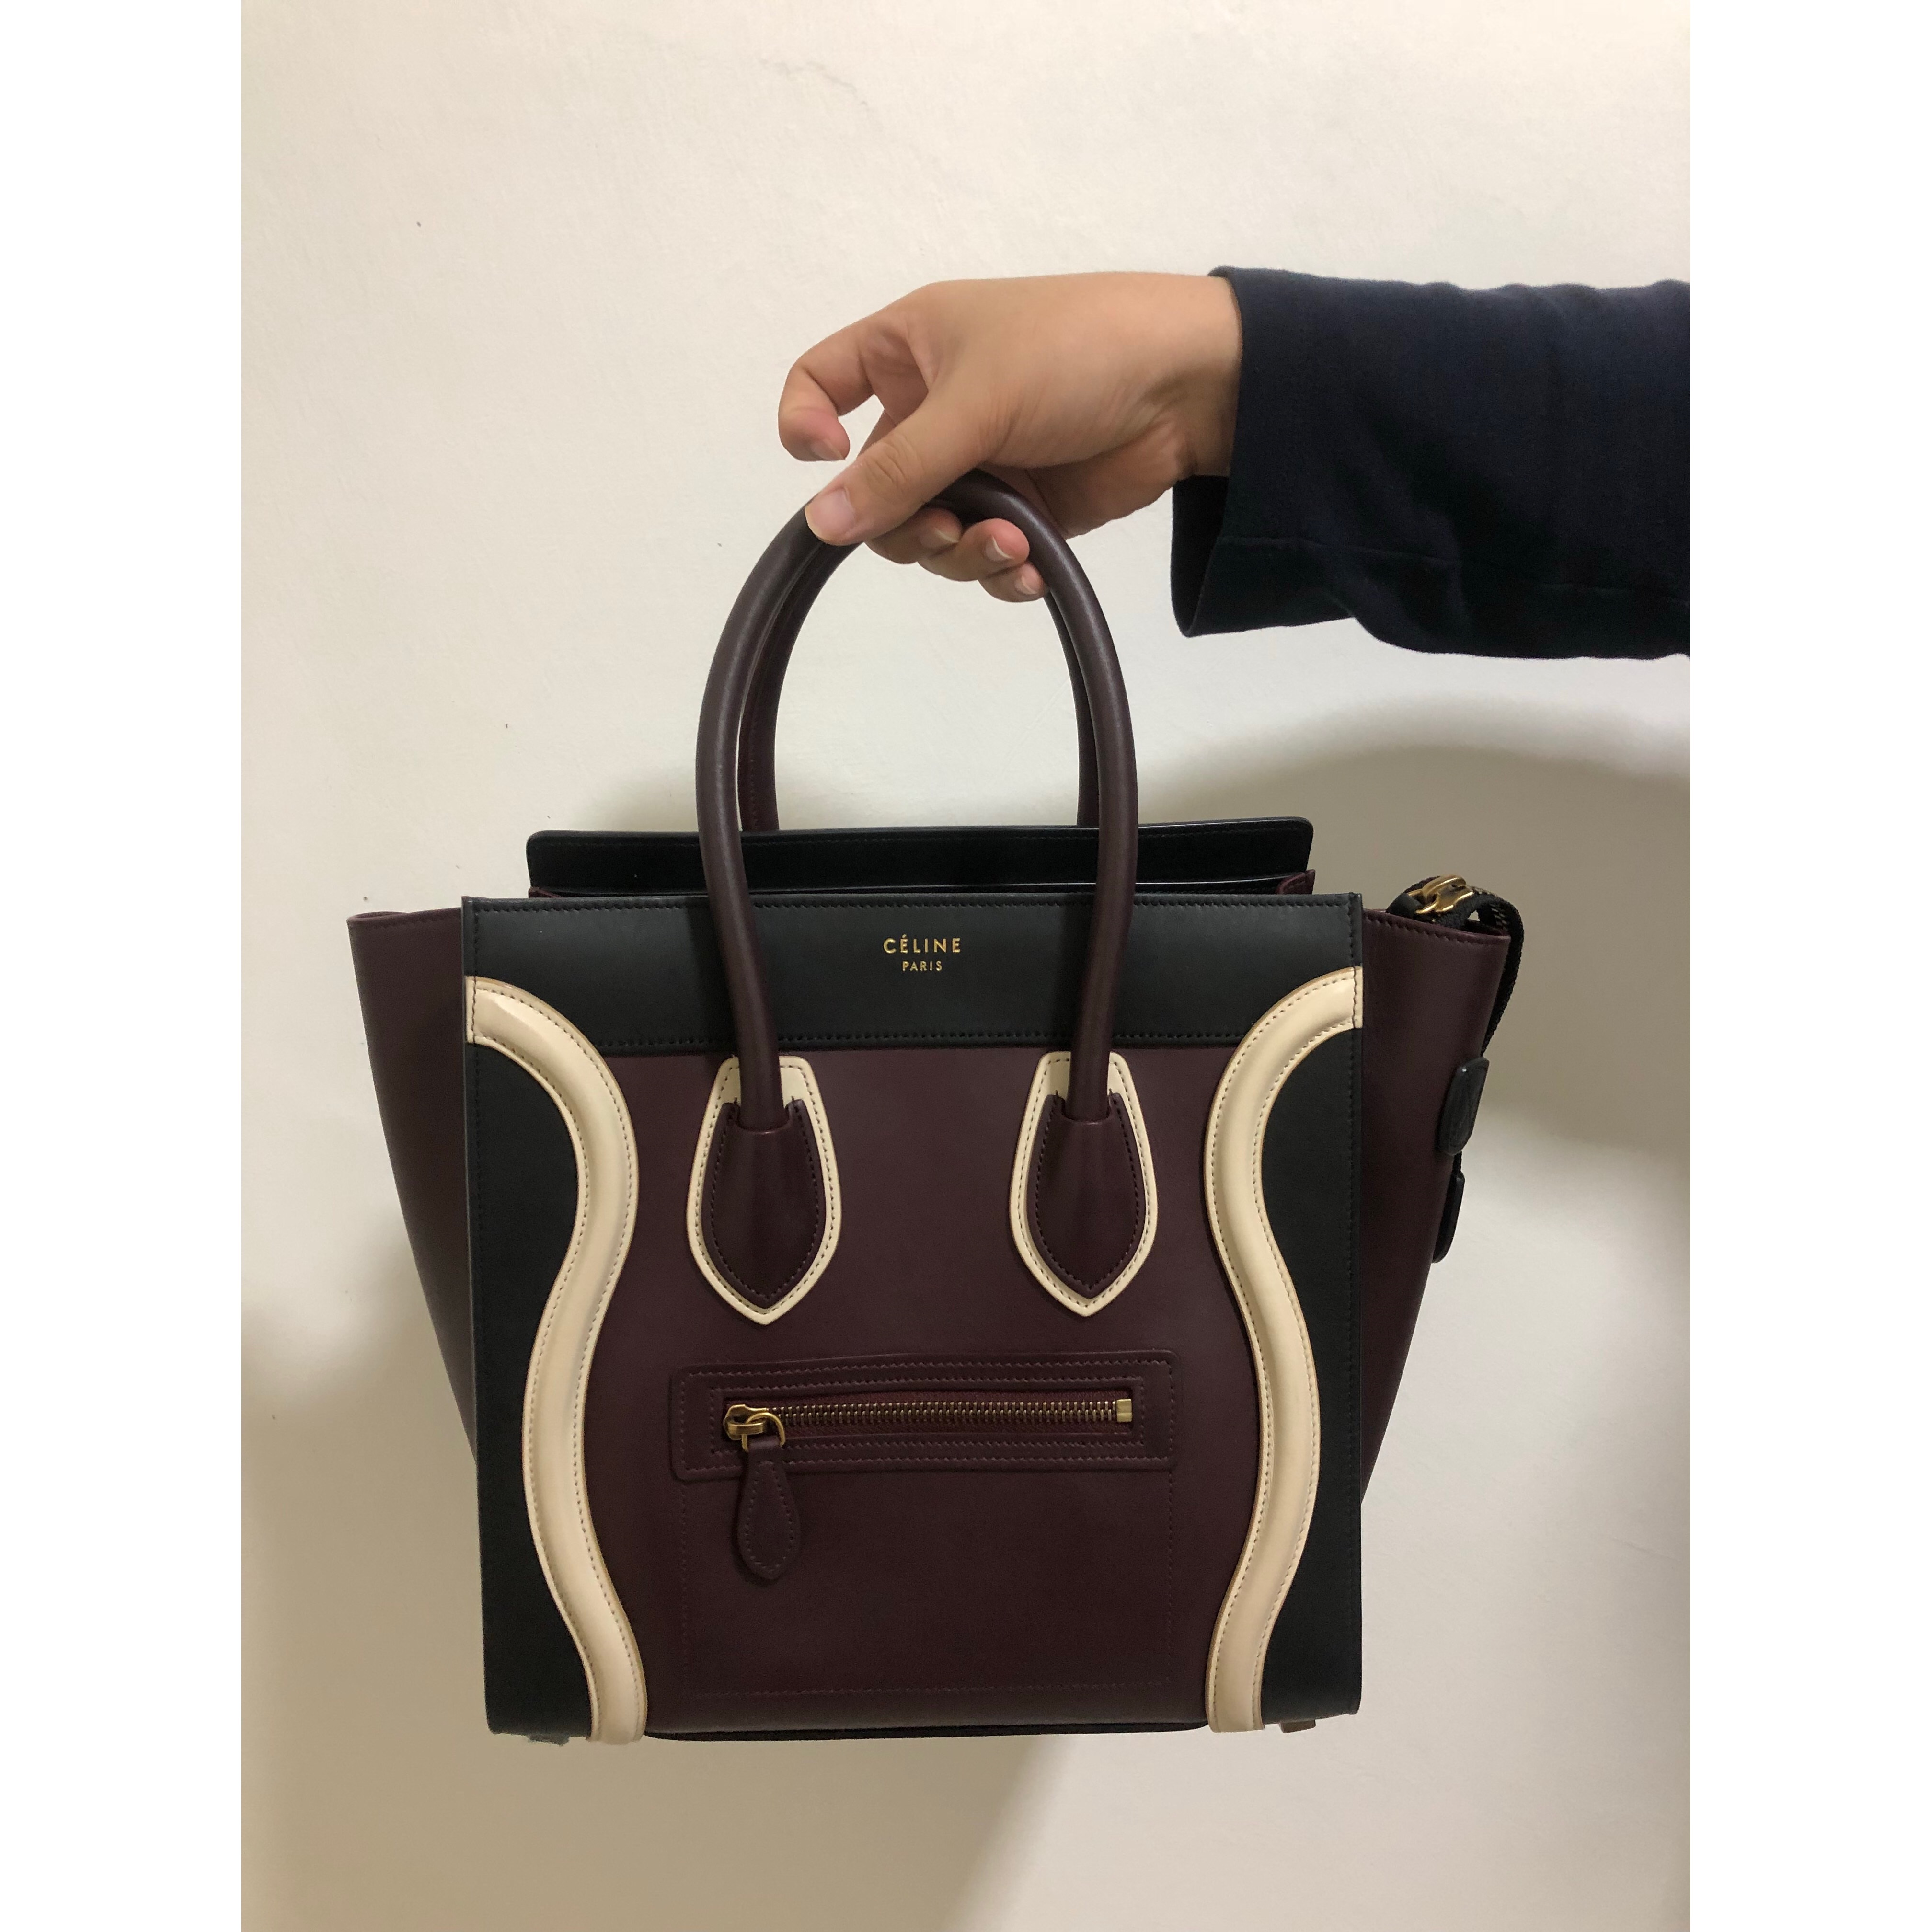 Celine micro Luggage Handbag in tricolour baby grained calfskin  Measurements   27 x 27 x 15cm Condition   9 10 Color Material   Burgundy  colour In ... 66c41d7485f37